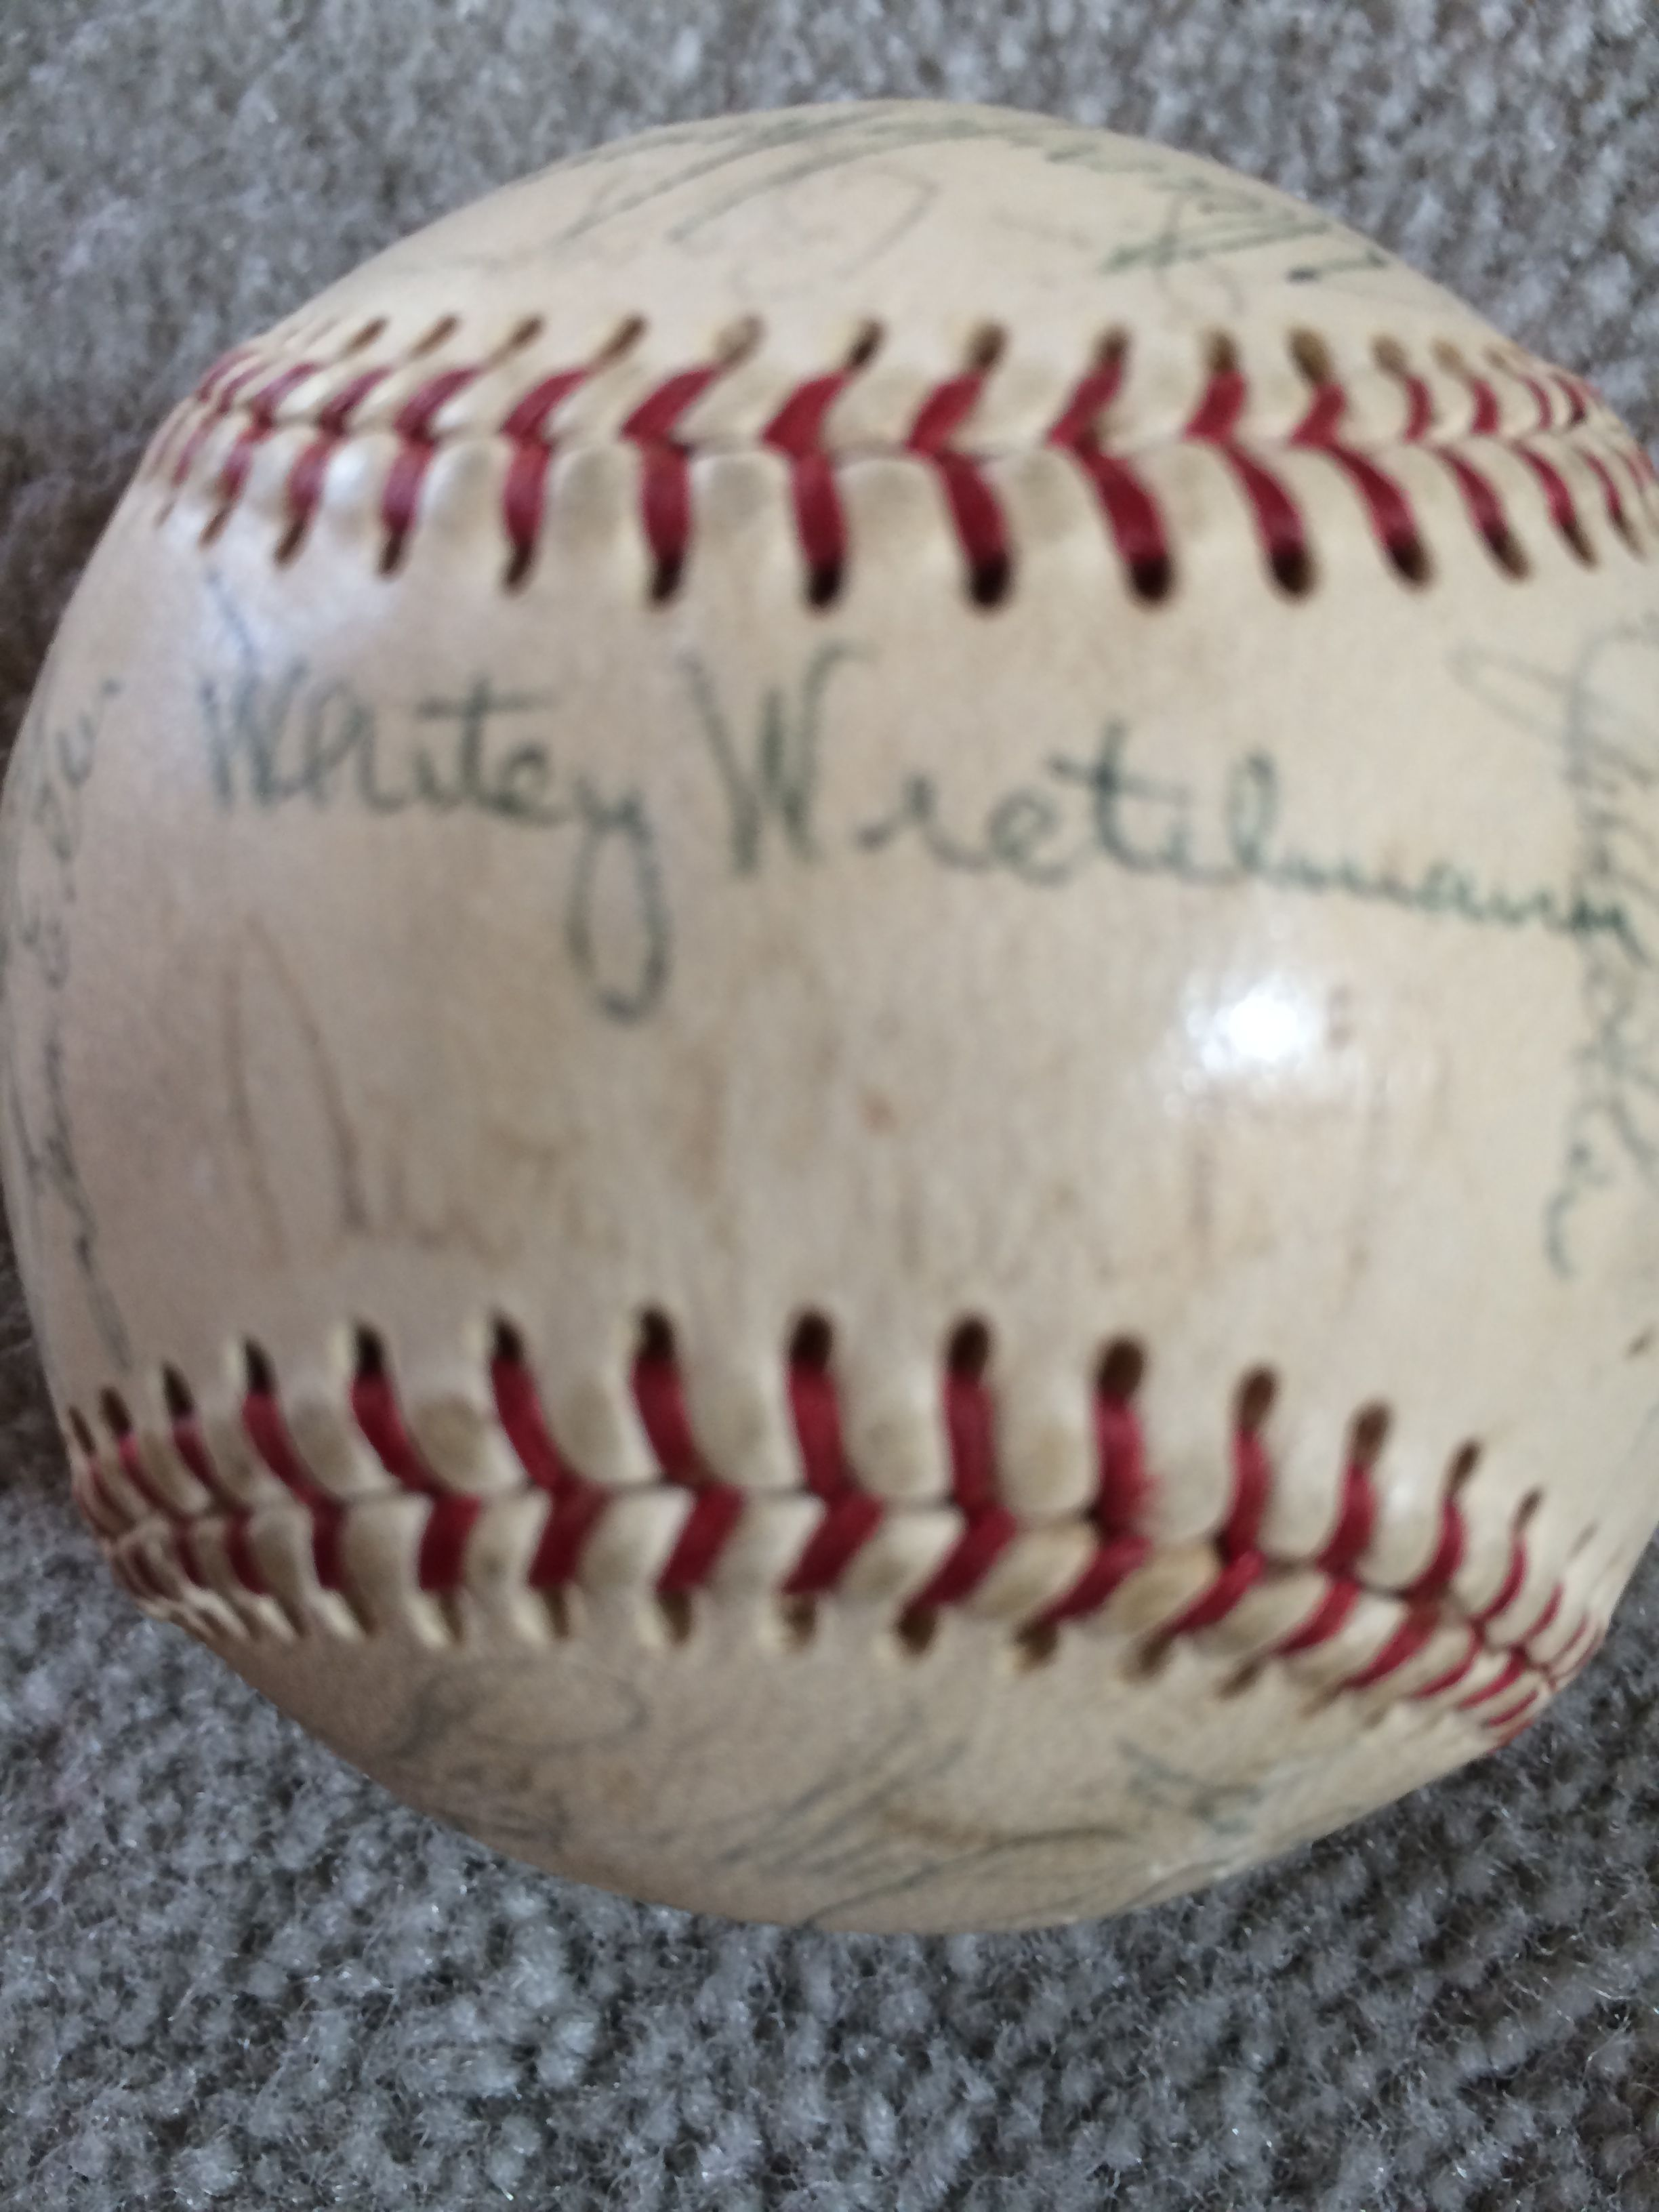 Johnny Bench Autographed Baseball Part - 50: ... 1967 REDS TEAM SIGNED BASEBALL With JOHNNY BENCH ROOKIE READ  DESCRIPTION ...